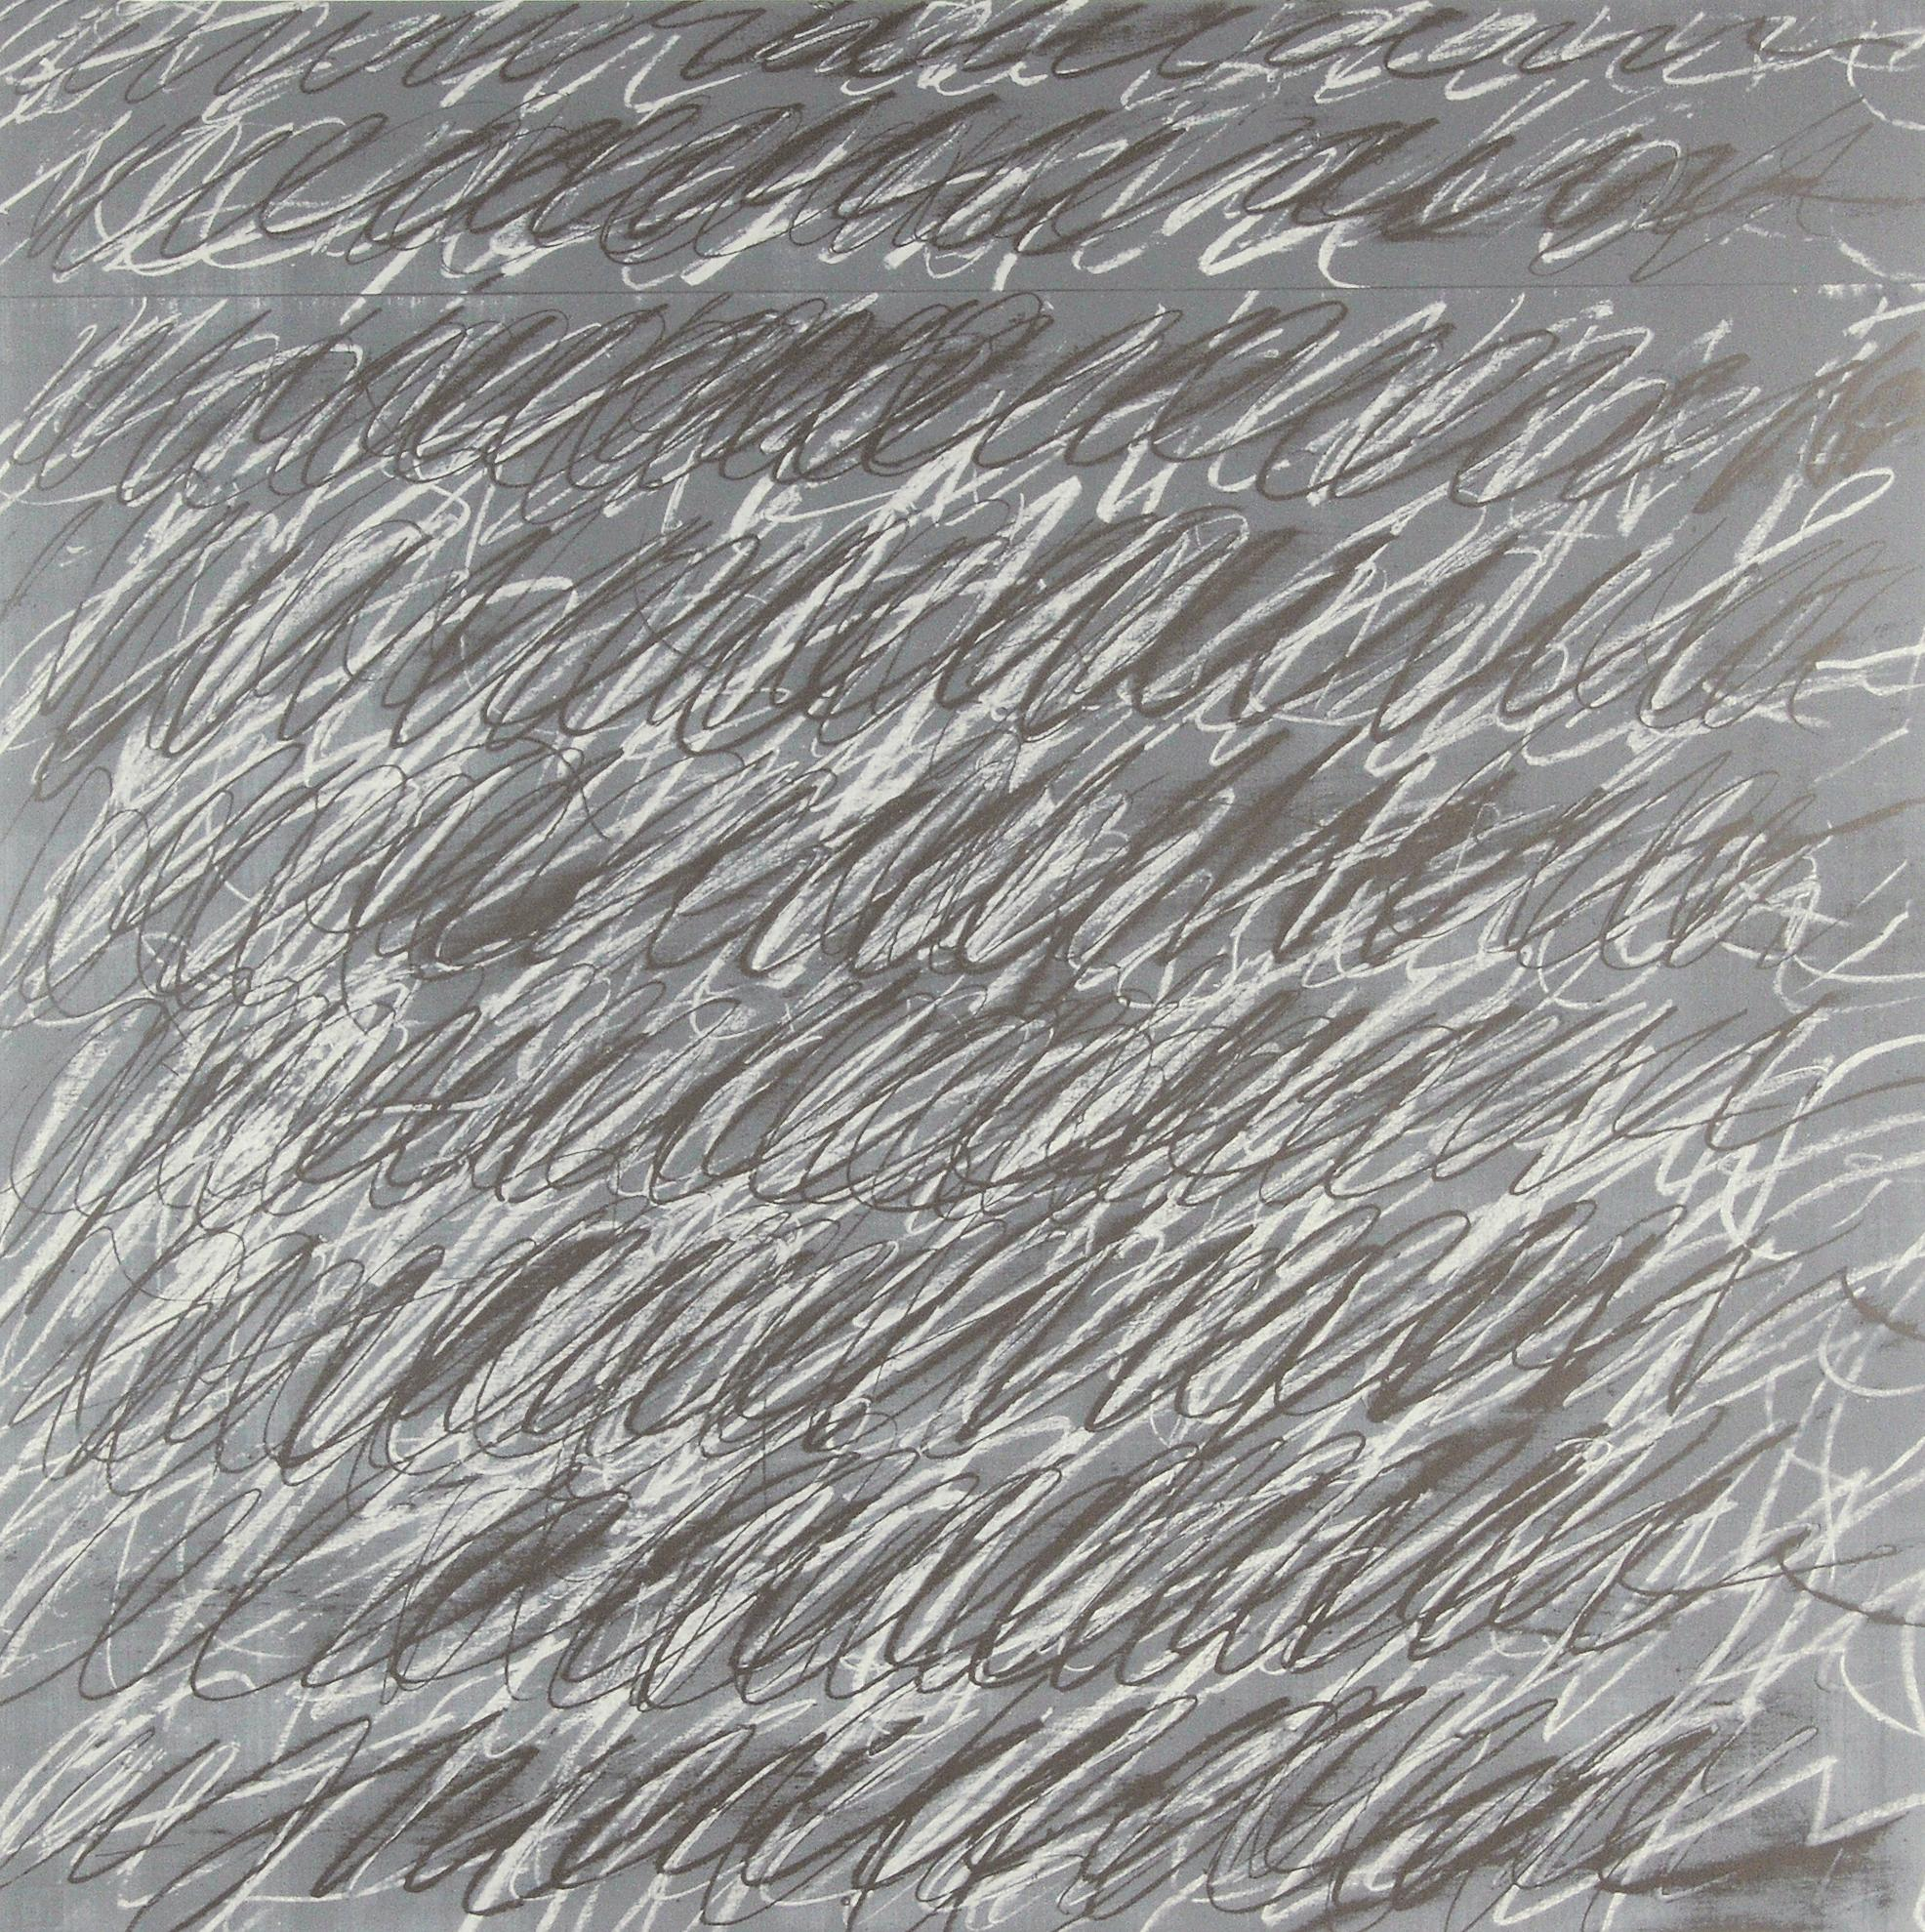 Untitled, from on the Bowery by Cy Twombly